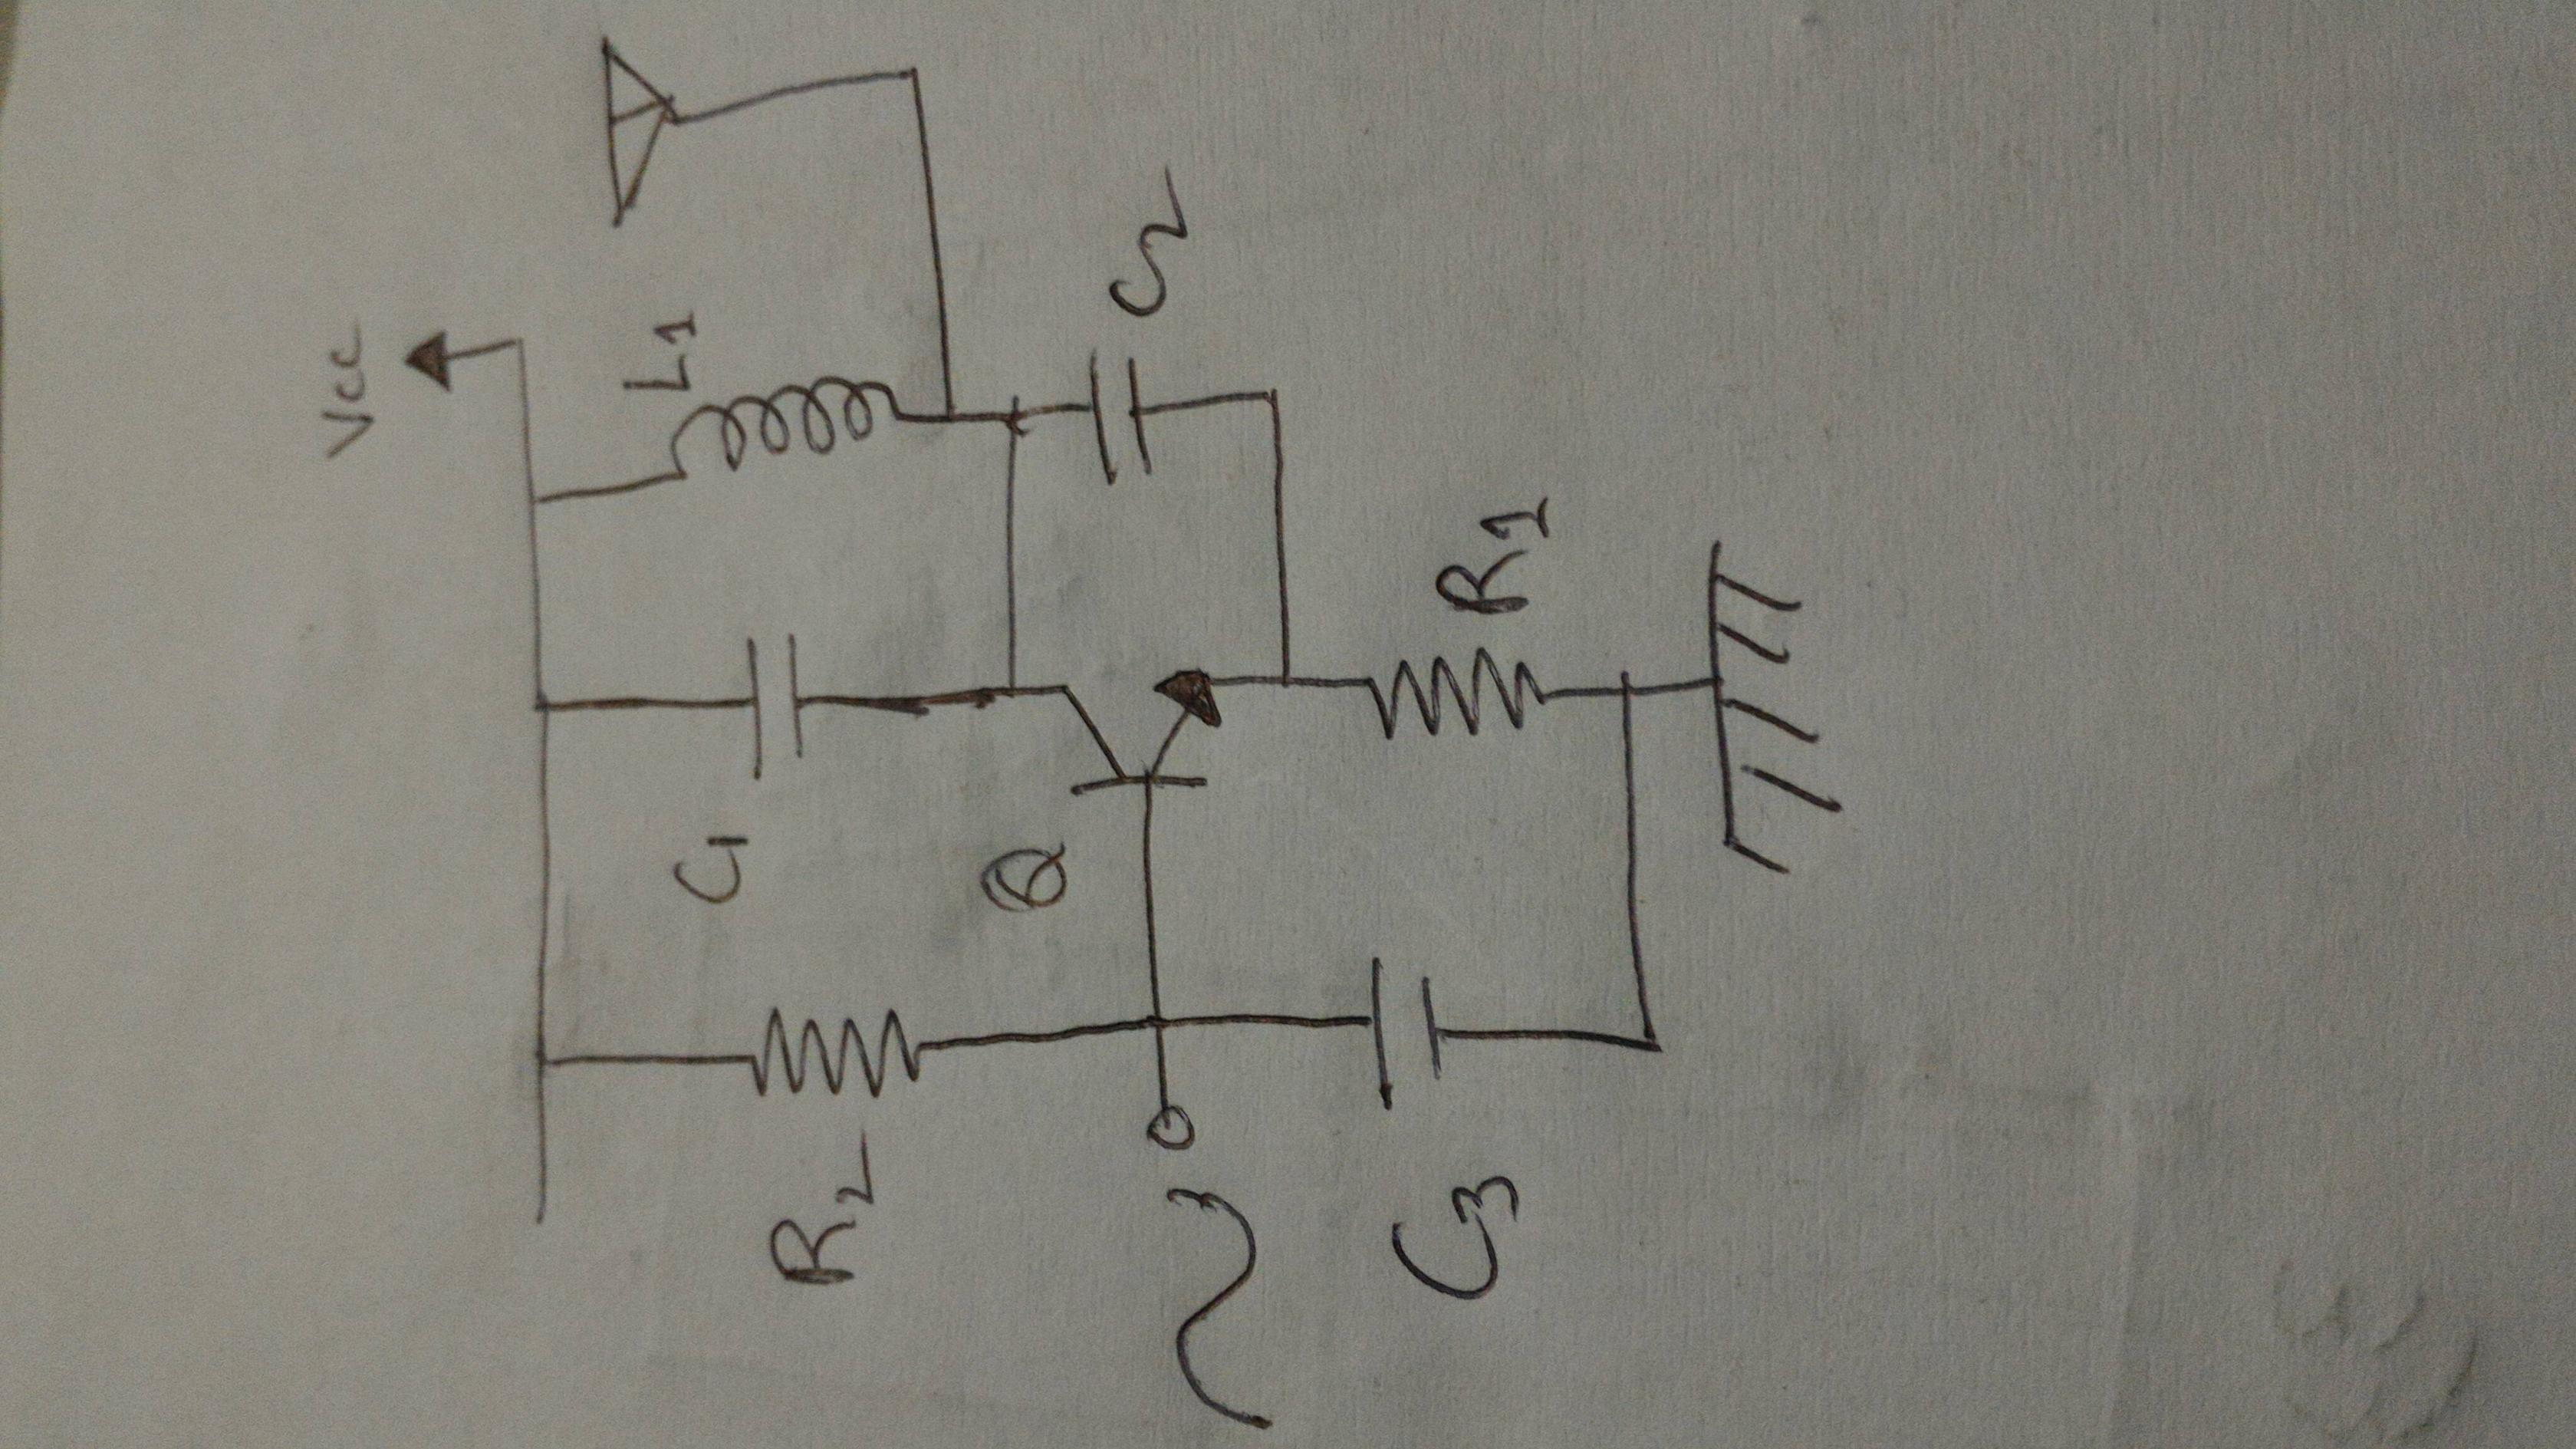 Design I Want To Build A Frequency Modulation Circuit Electrical